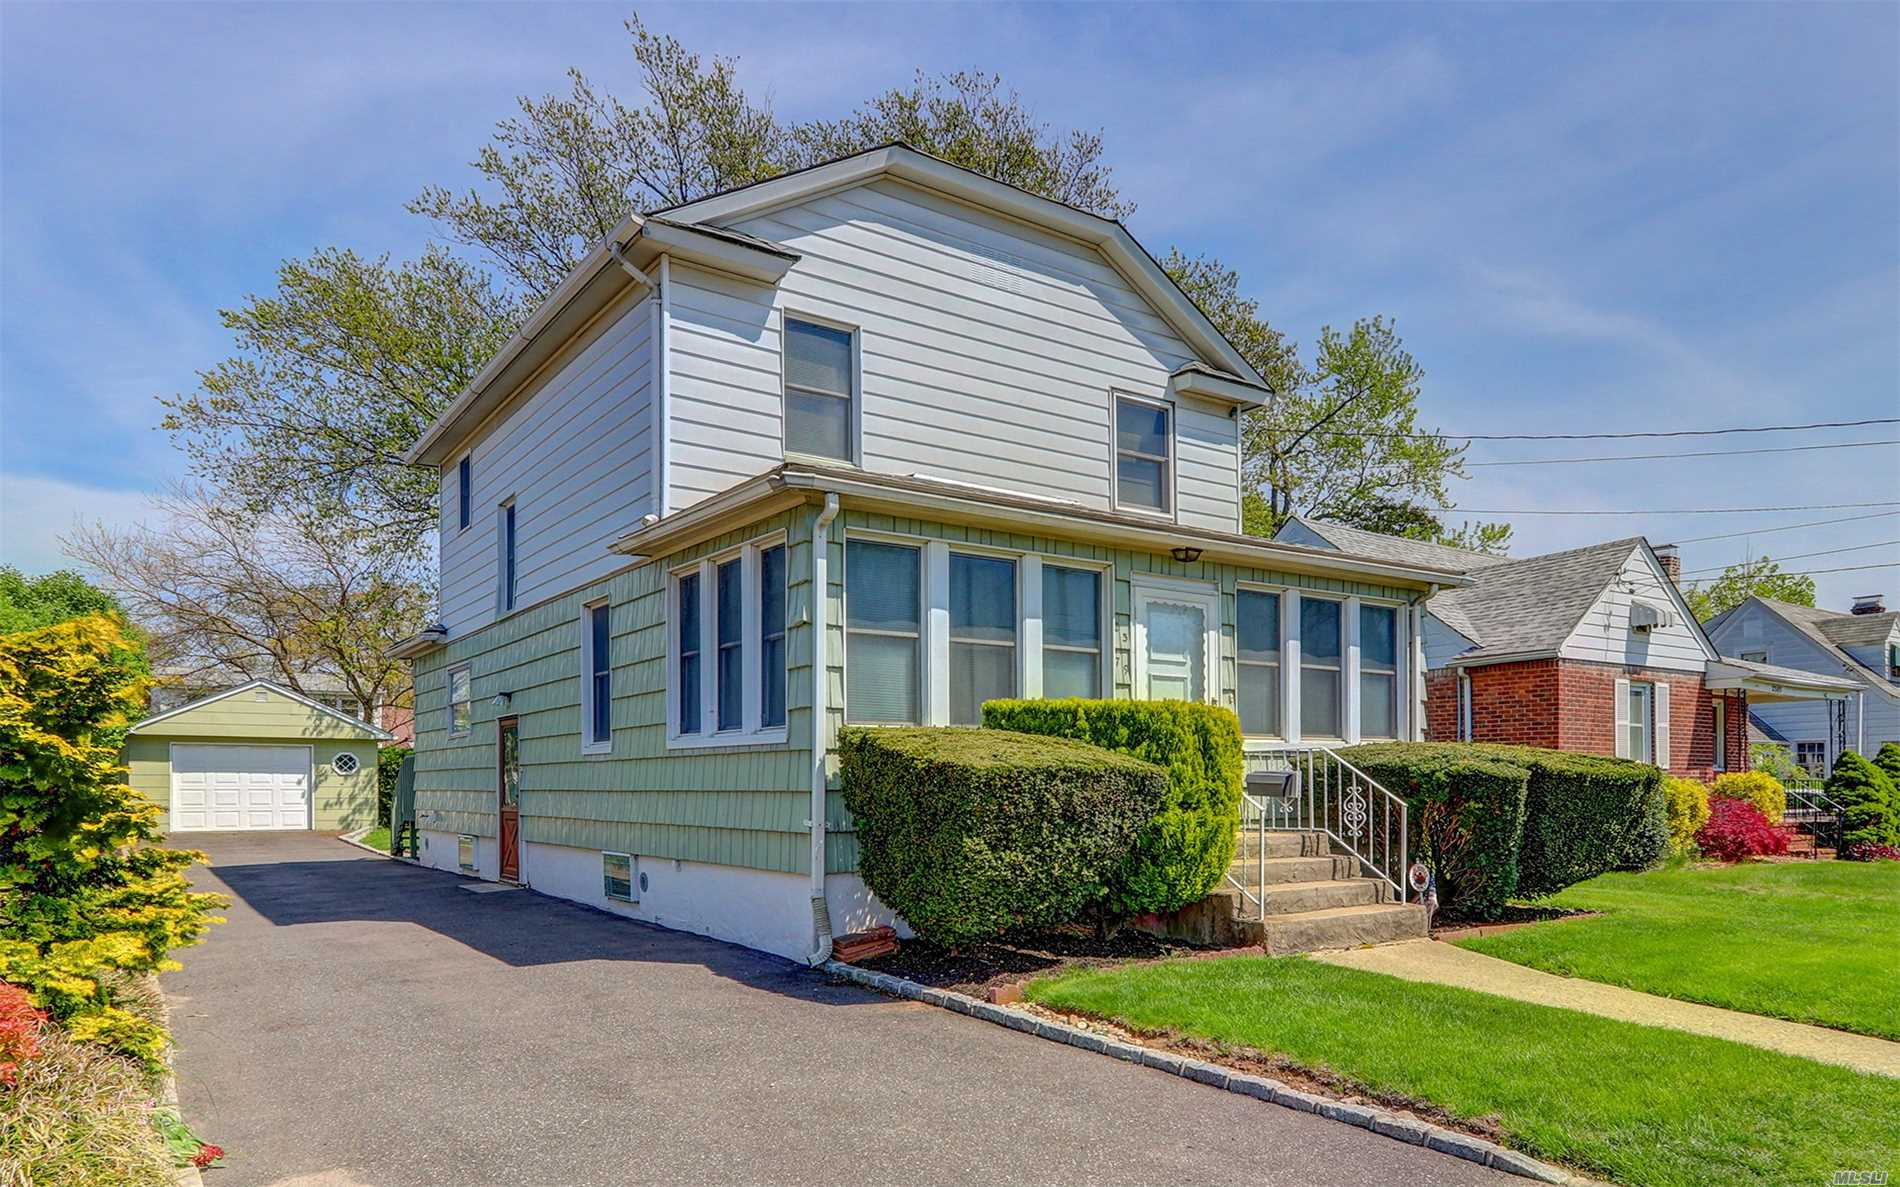 Photo of home for sale at 2379 Bellmore Ave, Bellmore NY